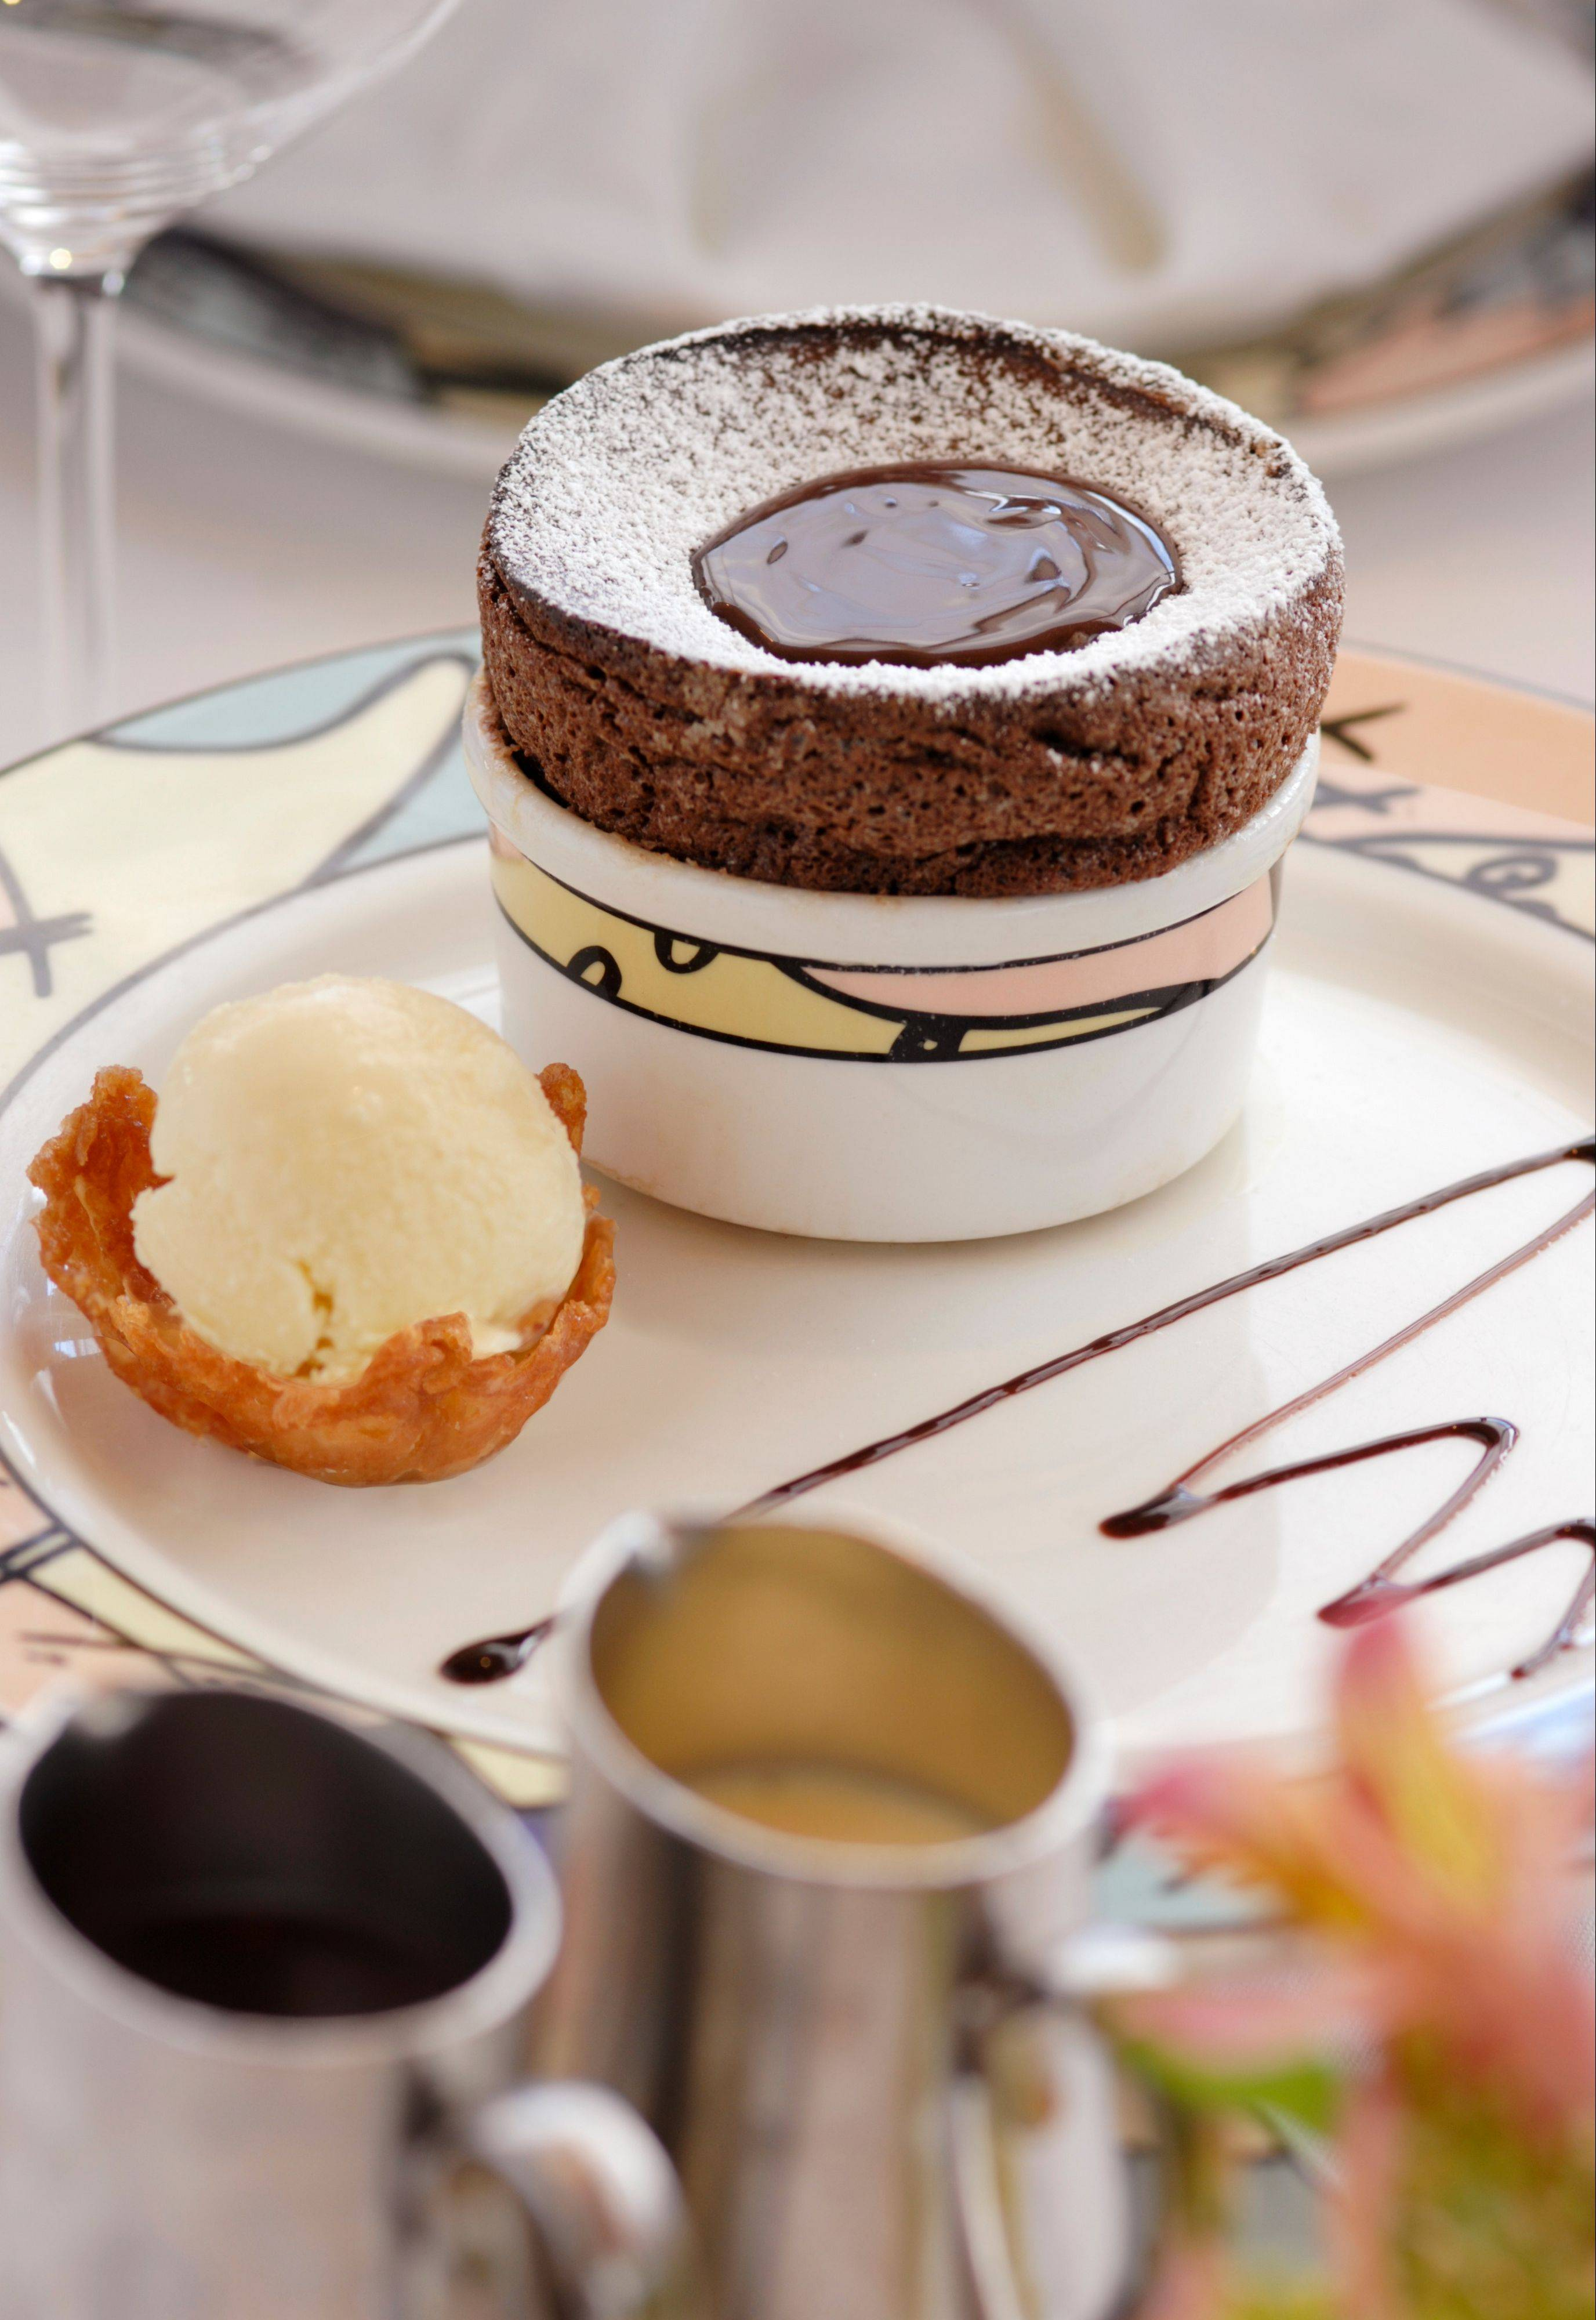 Chocolate souffle is a signature dessert at Palo restaurant aboard Disney Magic and it's not that difficult to re-create at home.